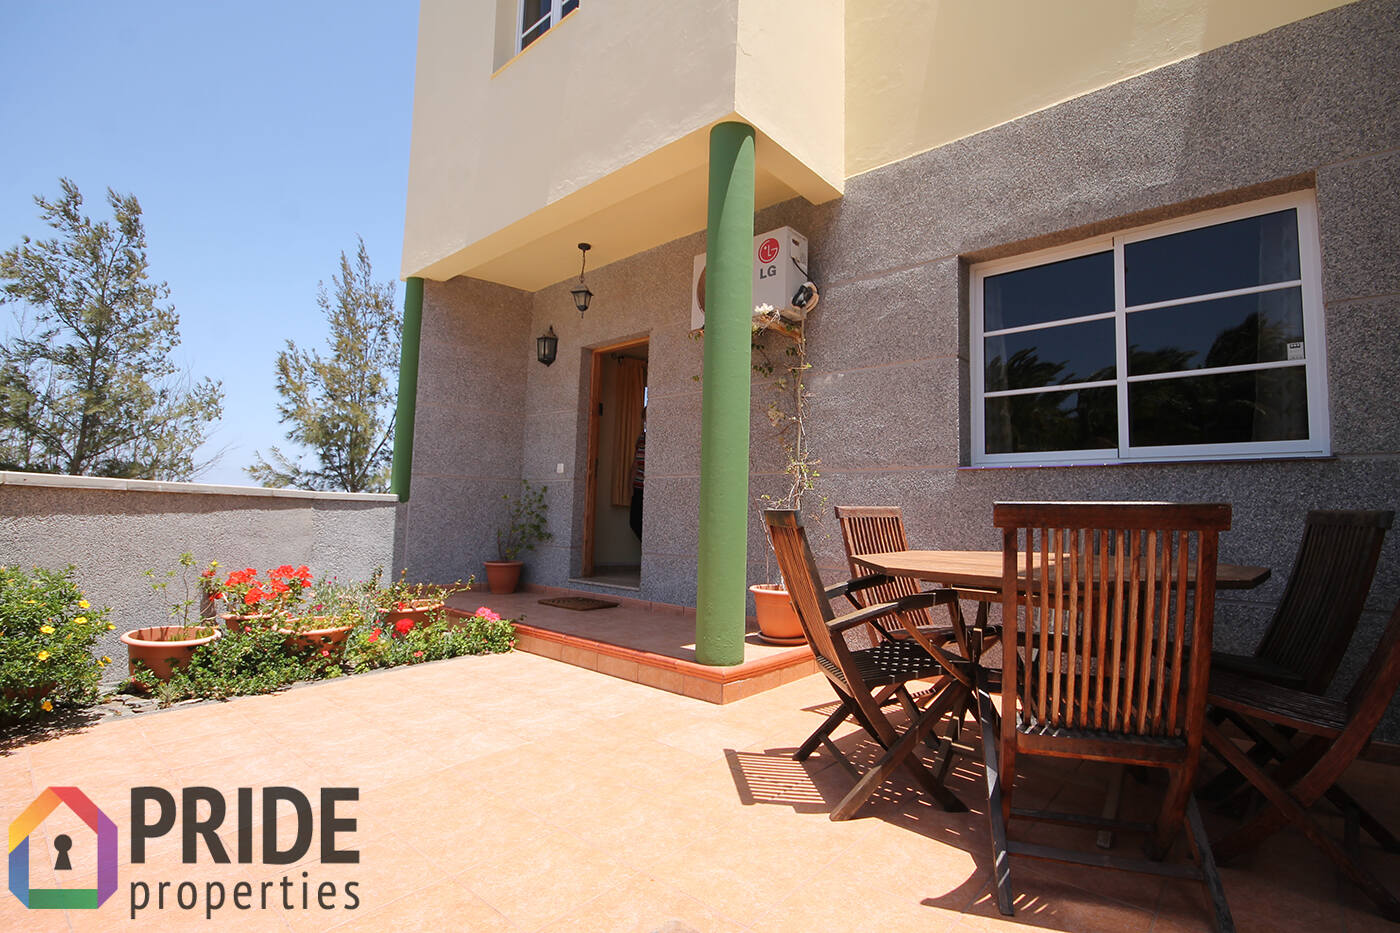 Aldea Blanca: Well maintained 3 bedroom house in tranquil environment